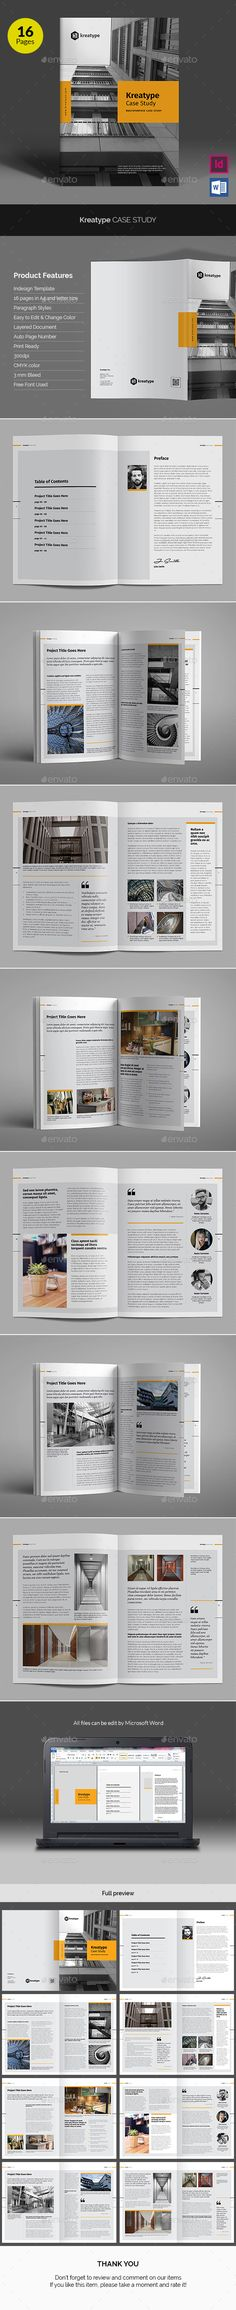 Kreatype Case Study v02 - Informational Brochures. Download link: https://graphicriver.net/item/kreatype-case-study-v02/17887881?ref=heriwibowo